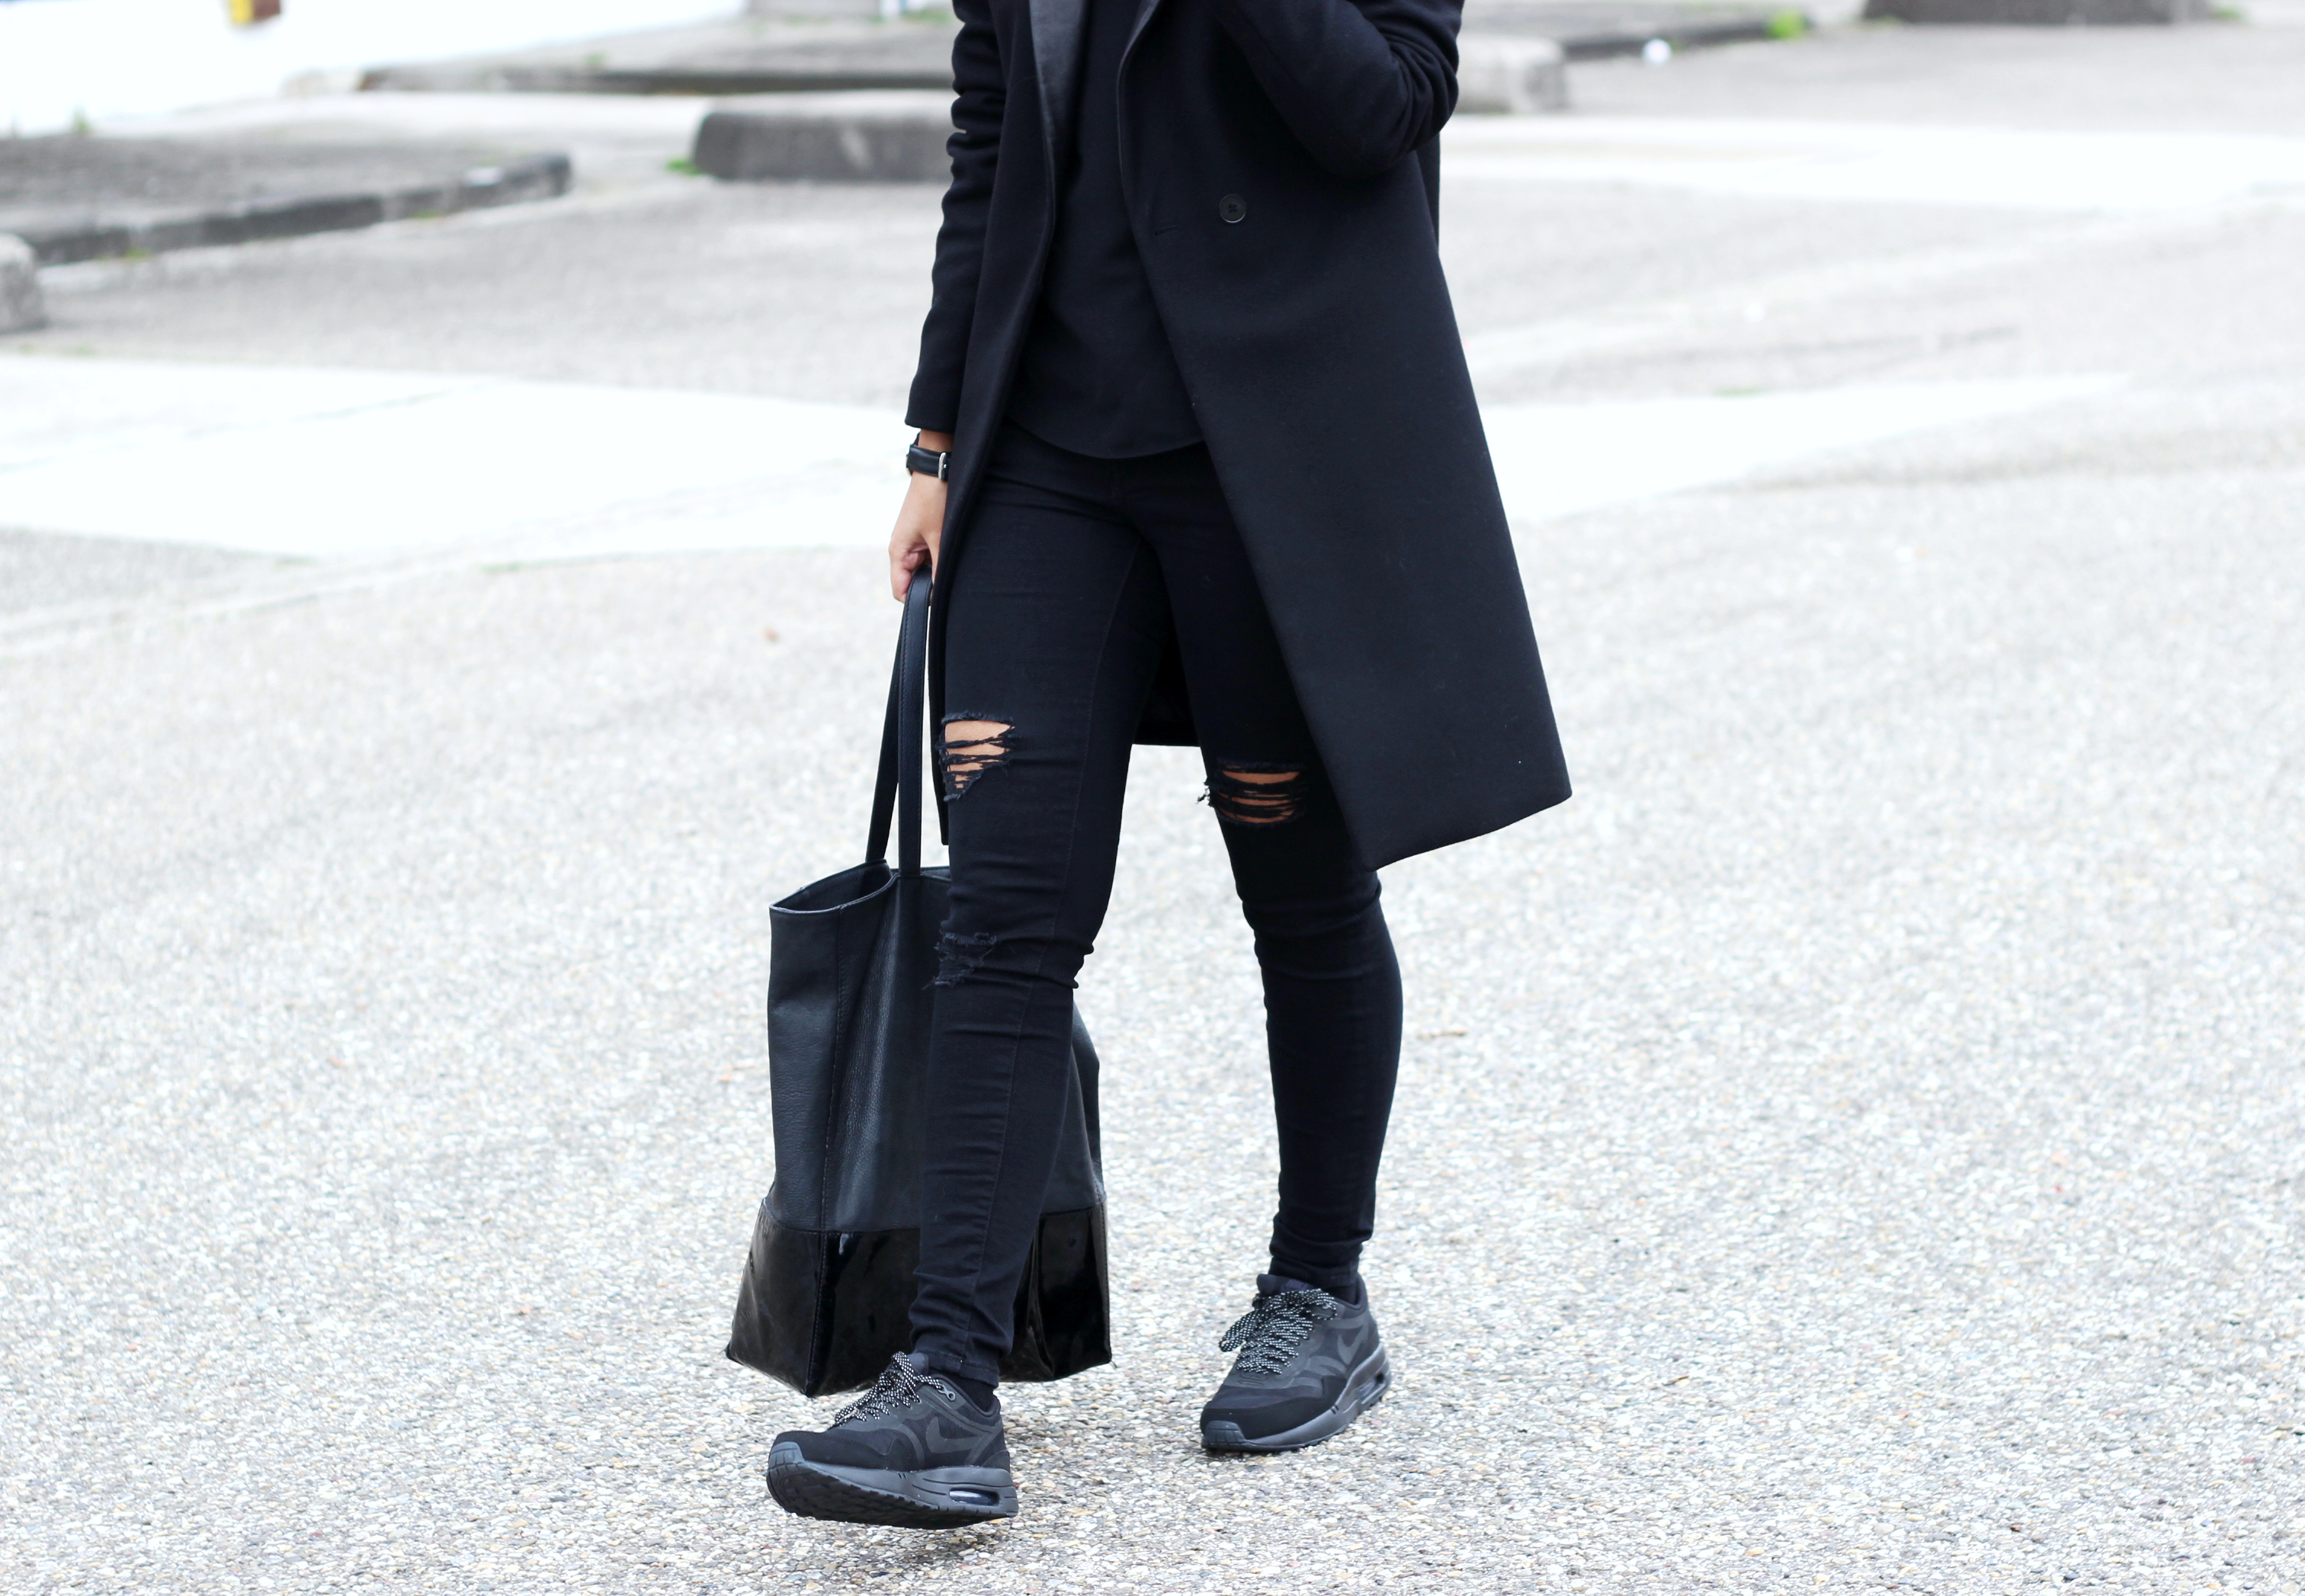 Black on black street style sneakers trend